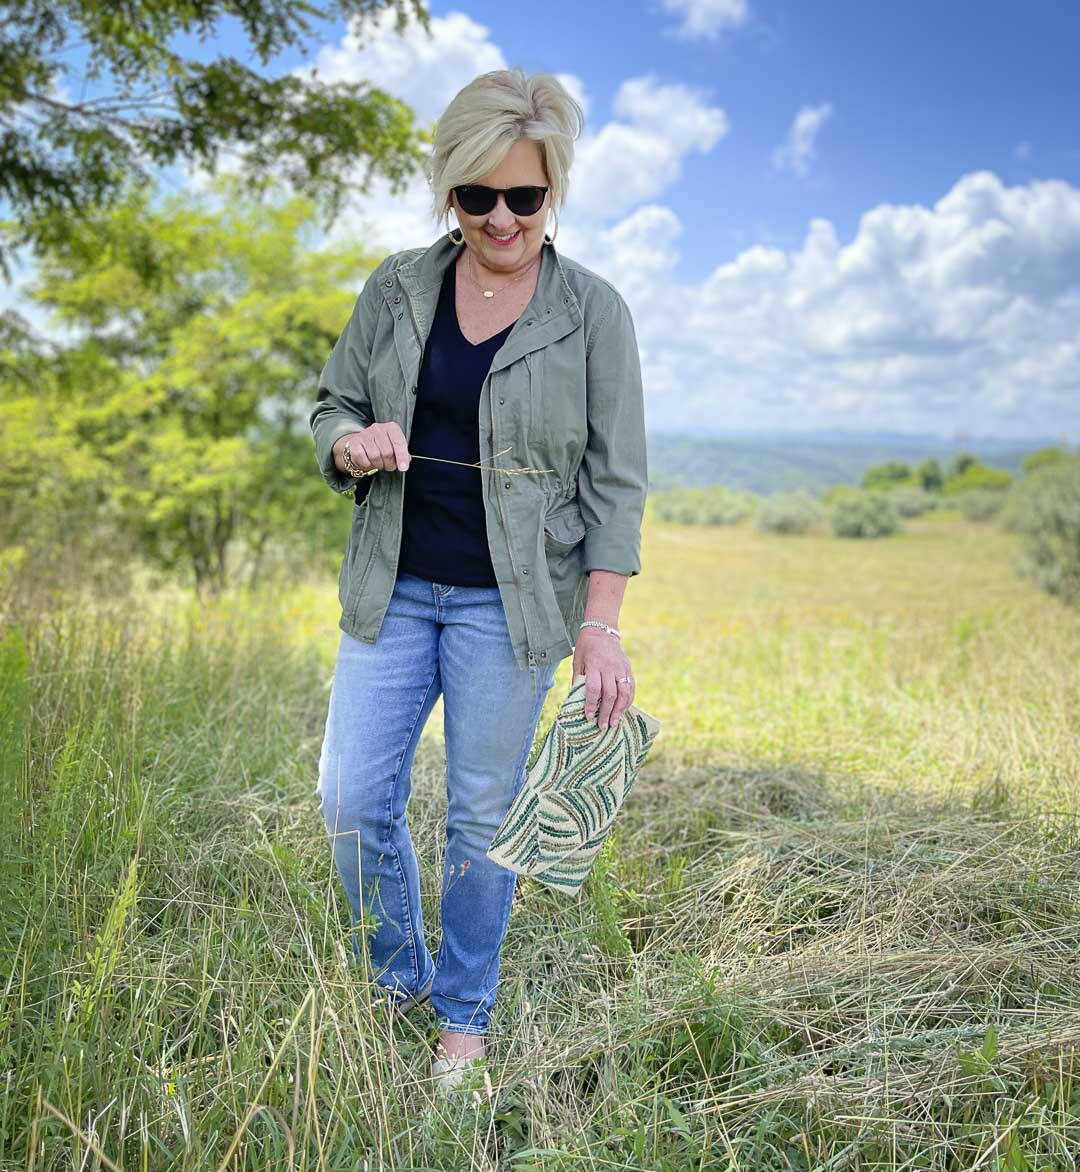 Fashion Blogger 50 Is Not Old is standing in a field while wearing black and olive together with jeans and an embroidered clutch